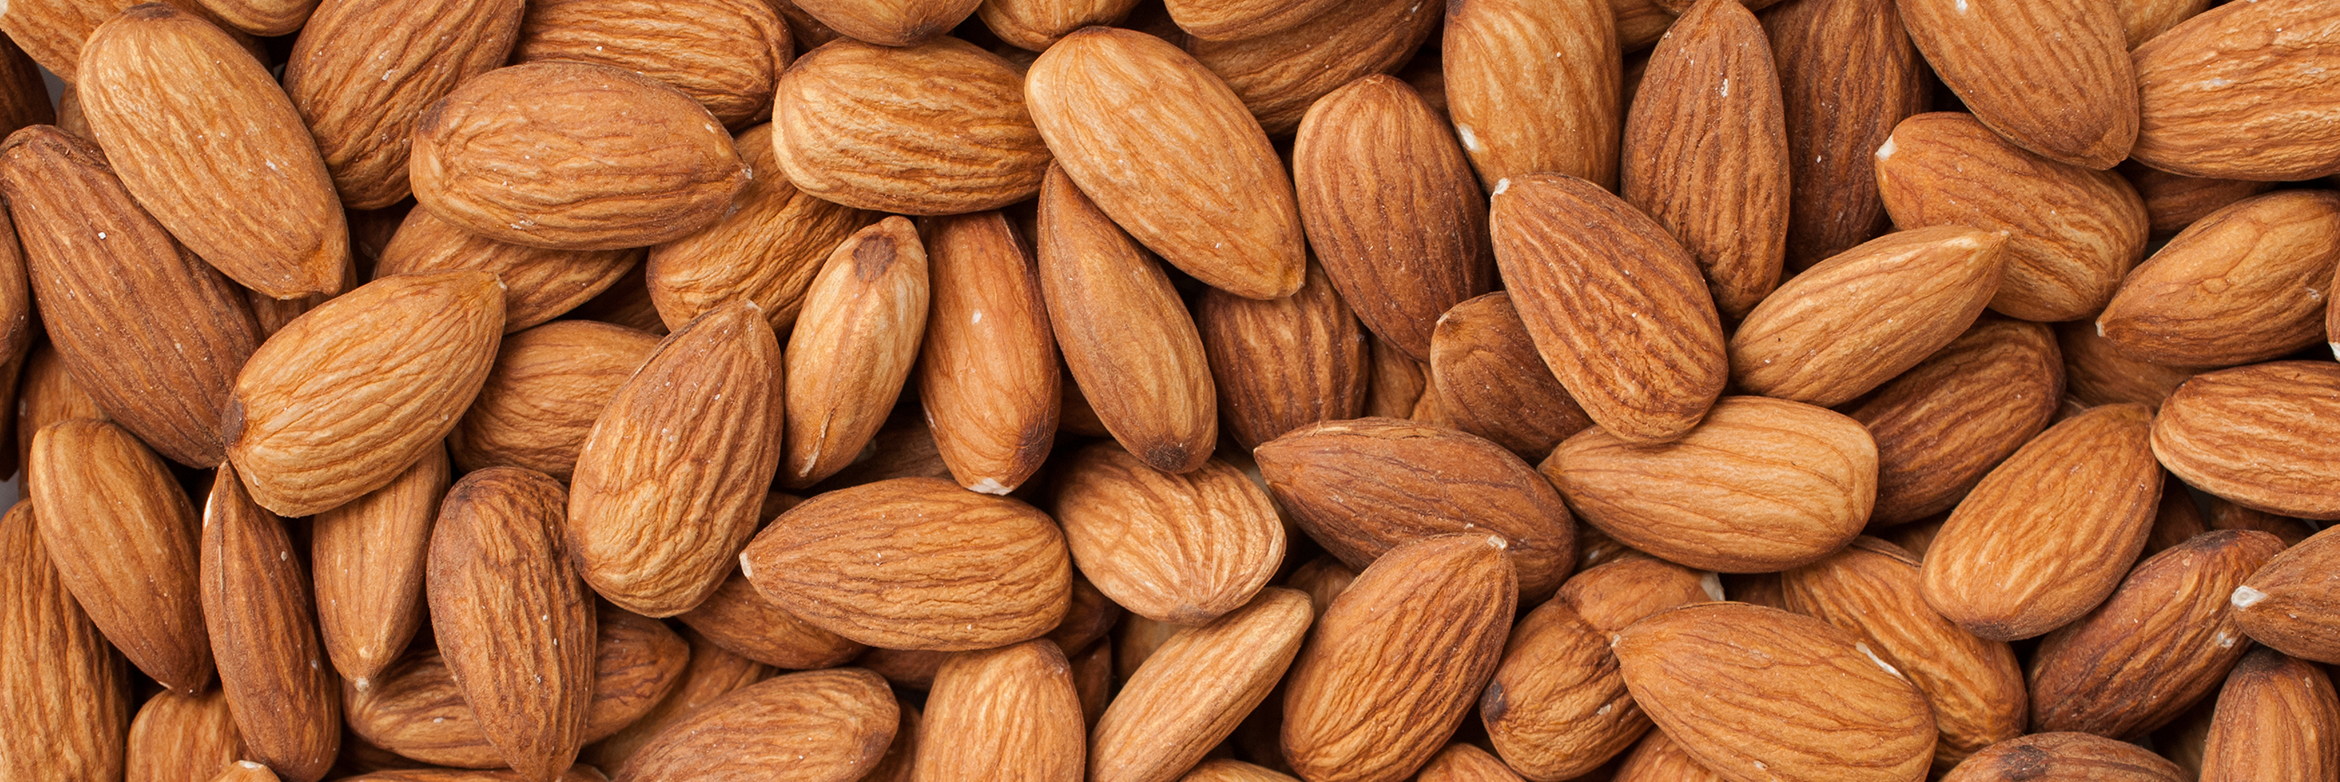 Almonds - CMV Group